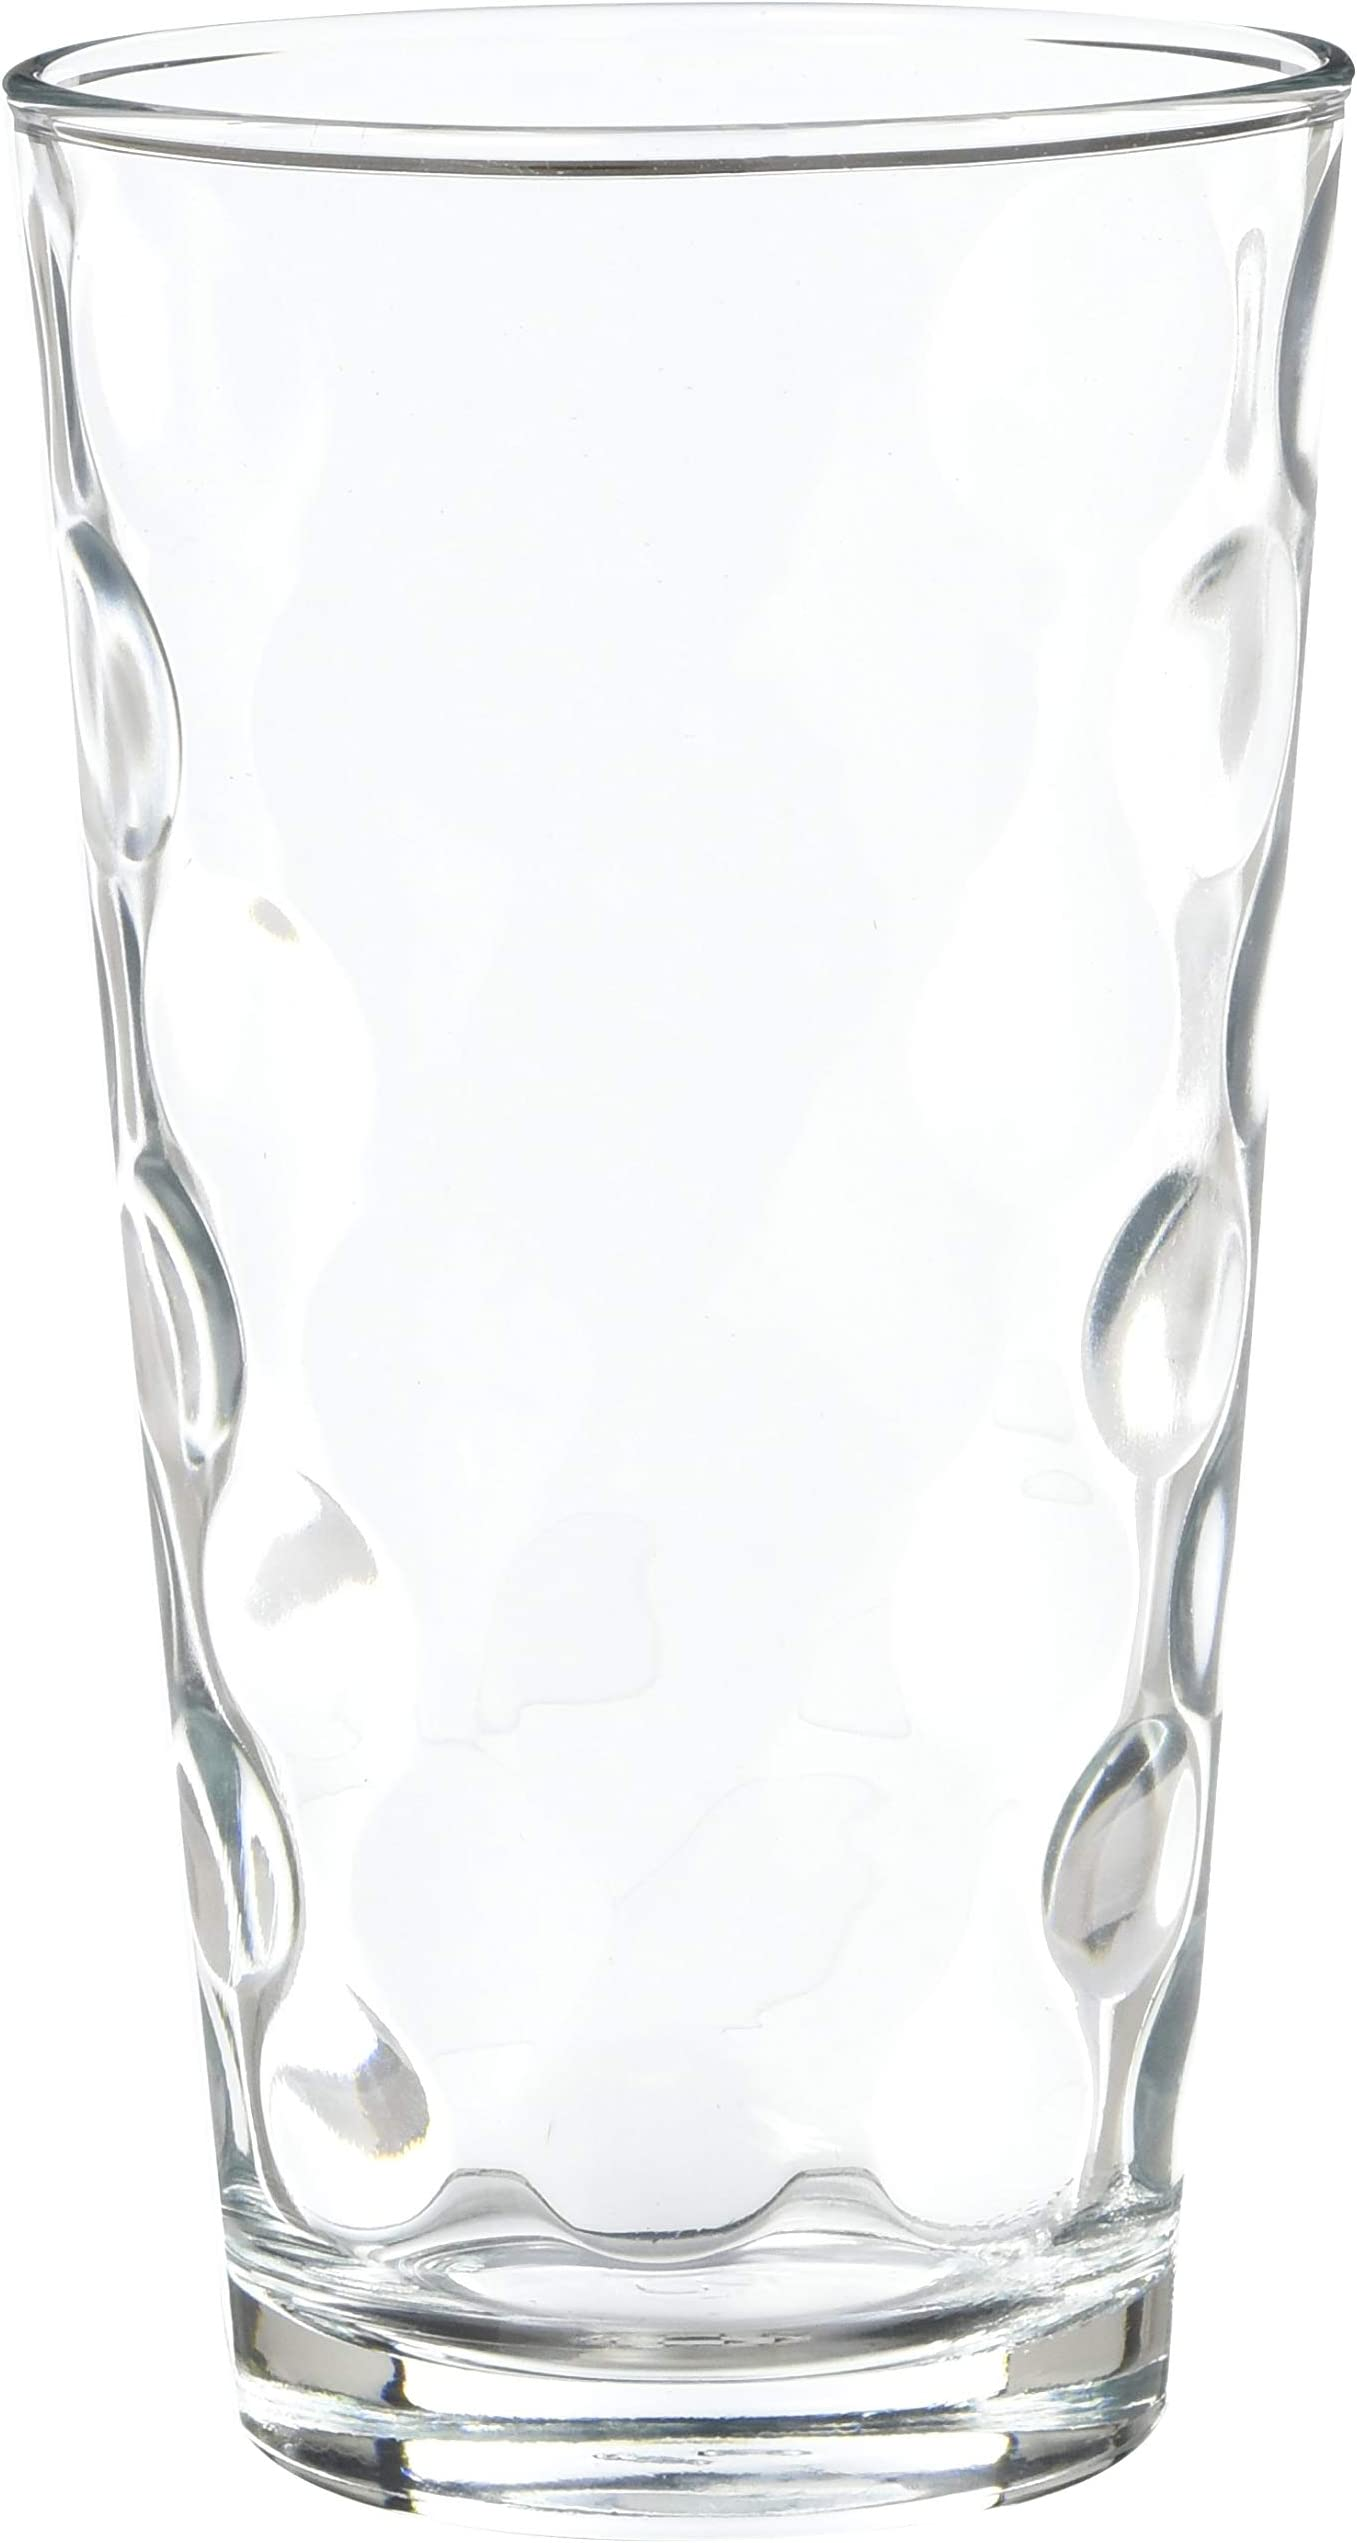 Home Essentials Eclipse 17oz Hiball Round Glasses Set of 10 Coolers